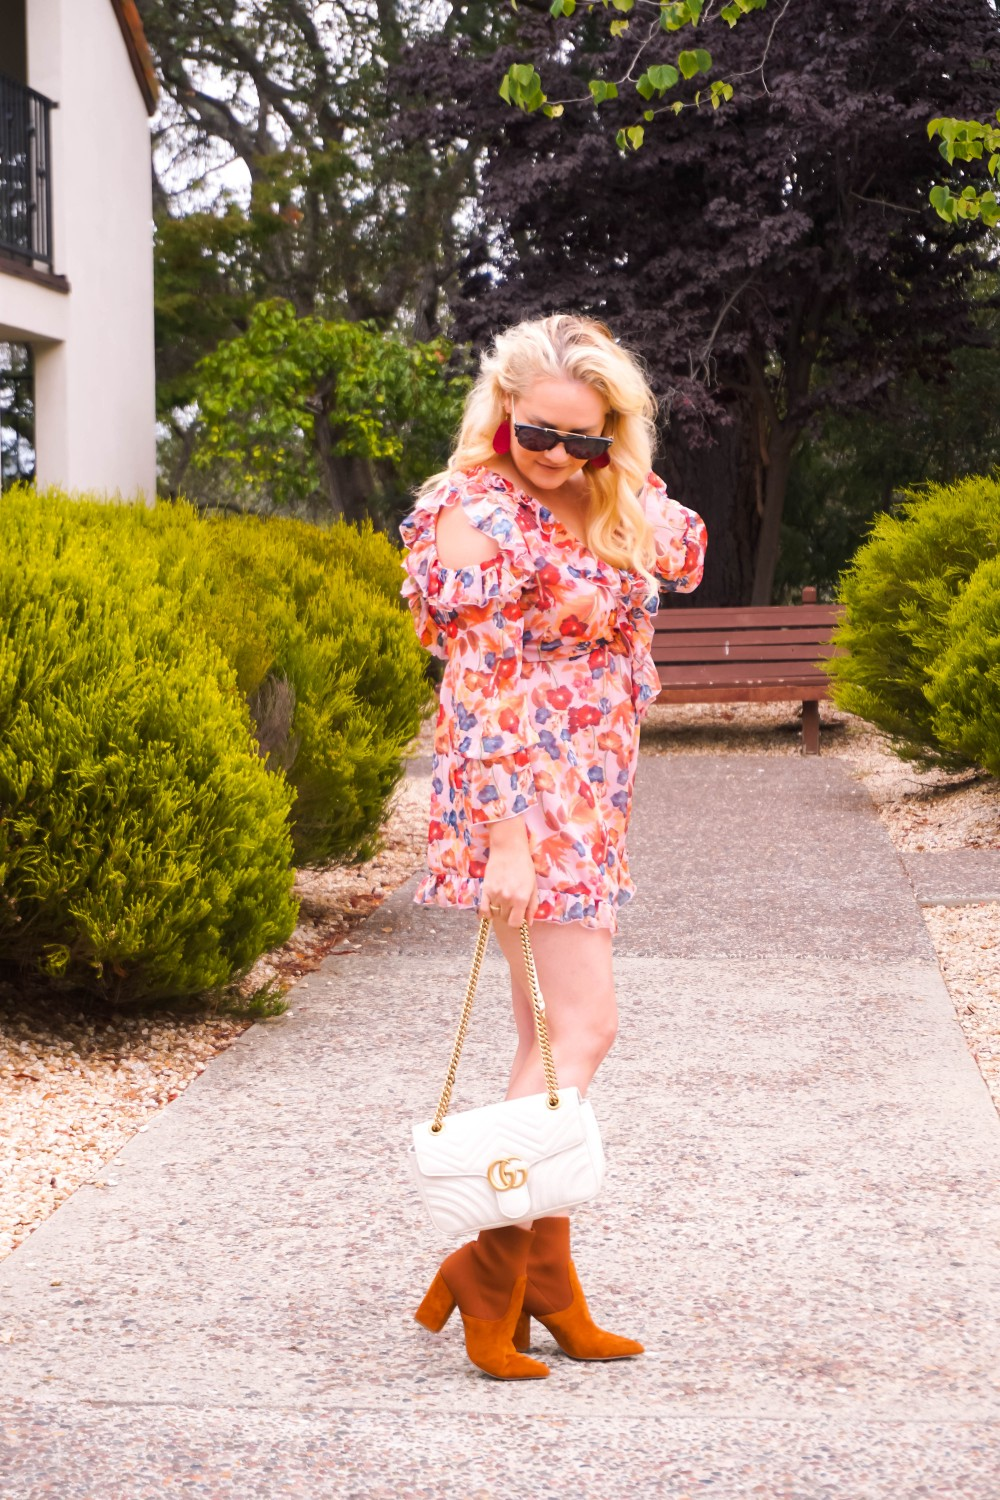 Fall Transition Outfit, Fall Ruffle Floral Romper, Sock Booties, Tom Ford Sunglasses, Gucci Marmont Bag, Outfit Inspiration, Have Need Want